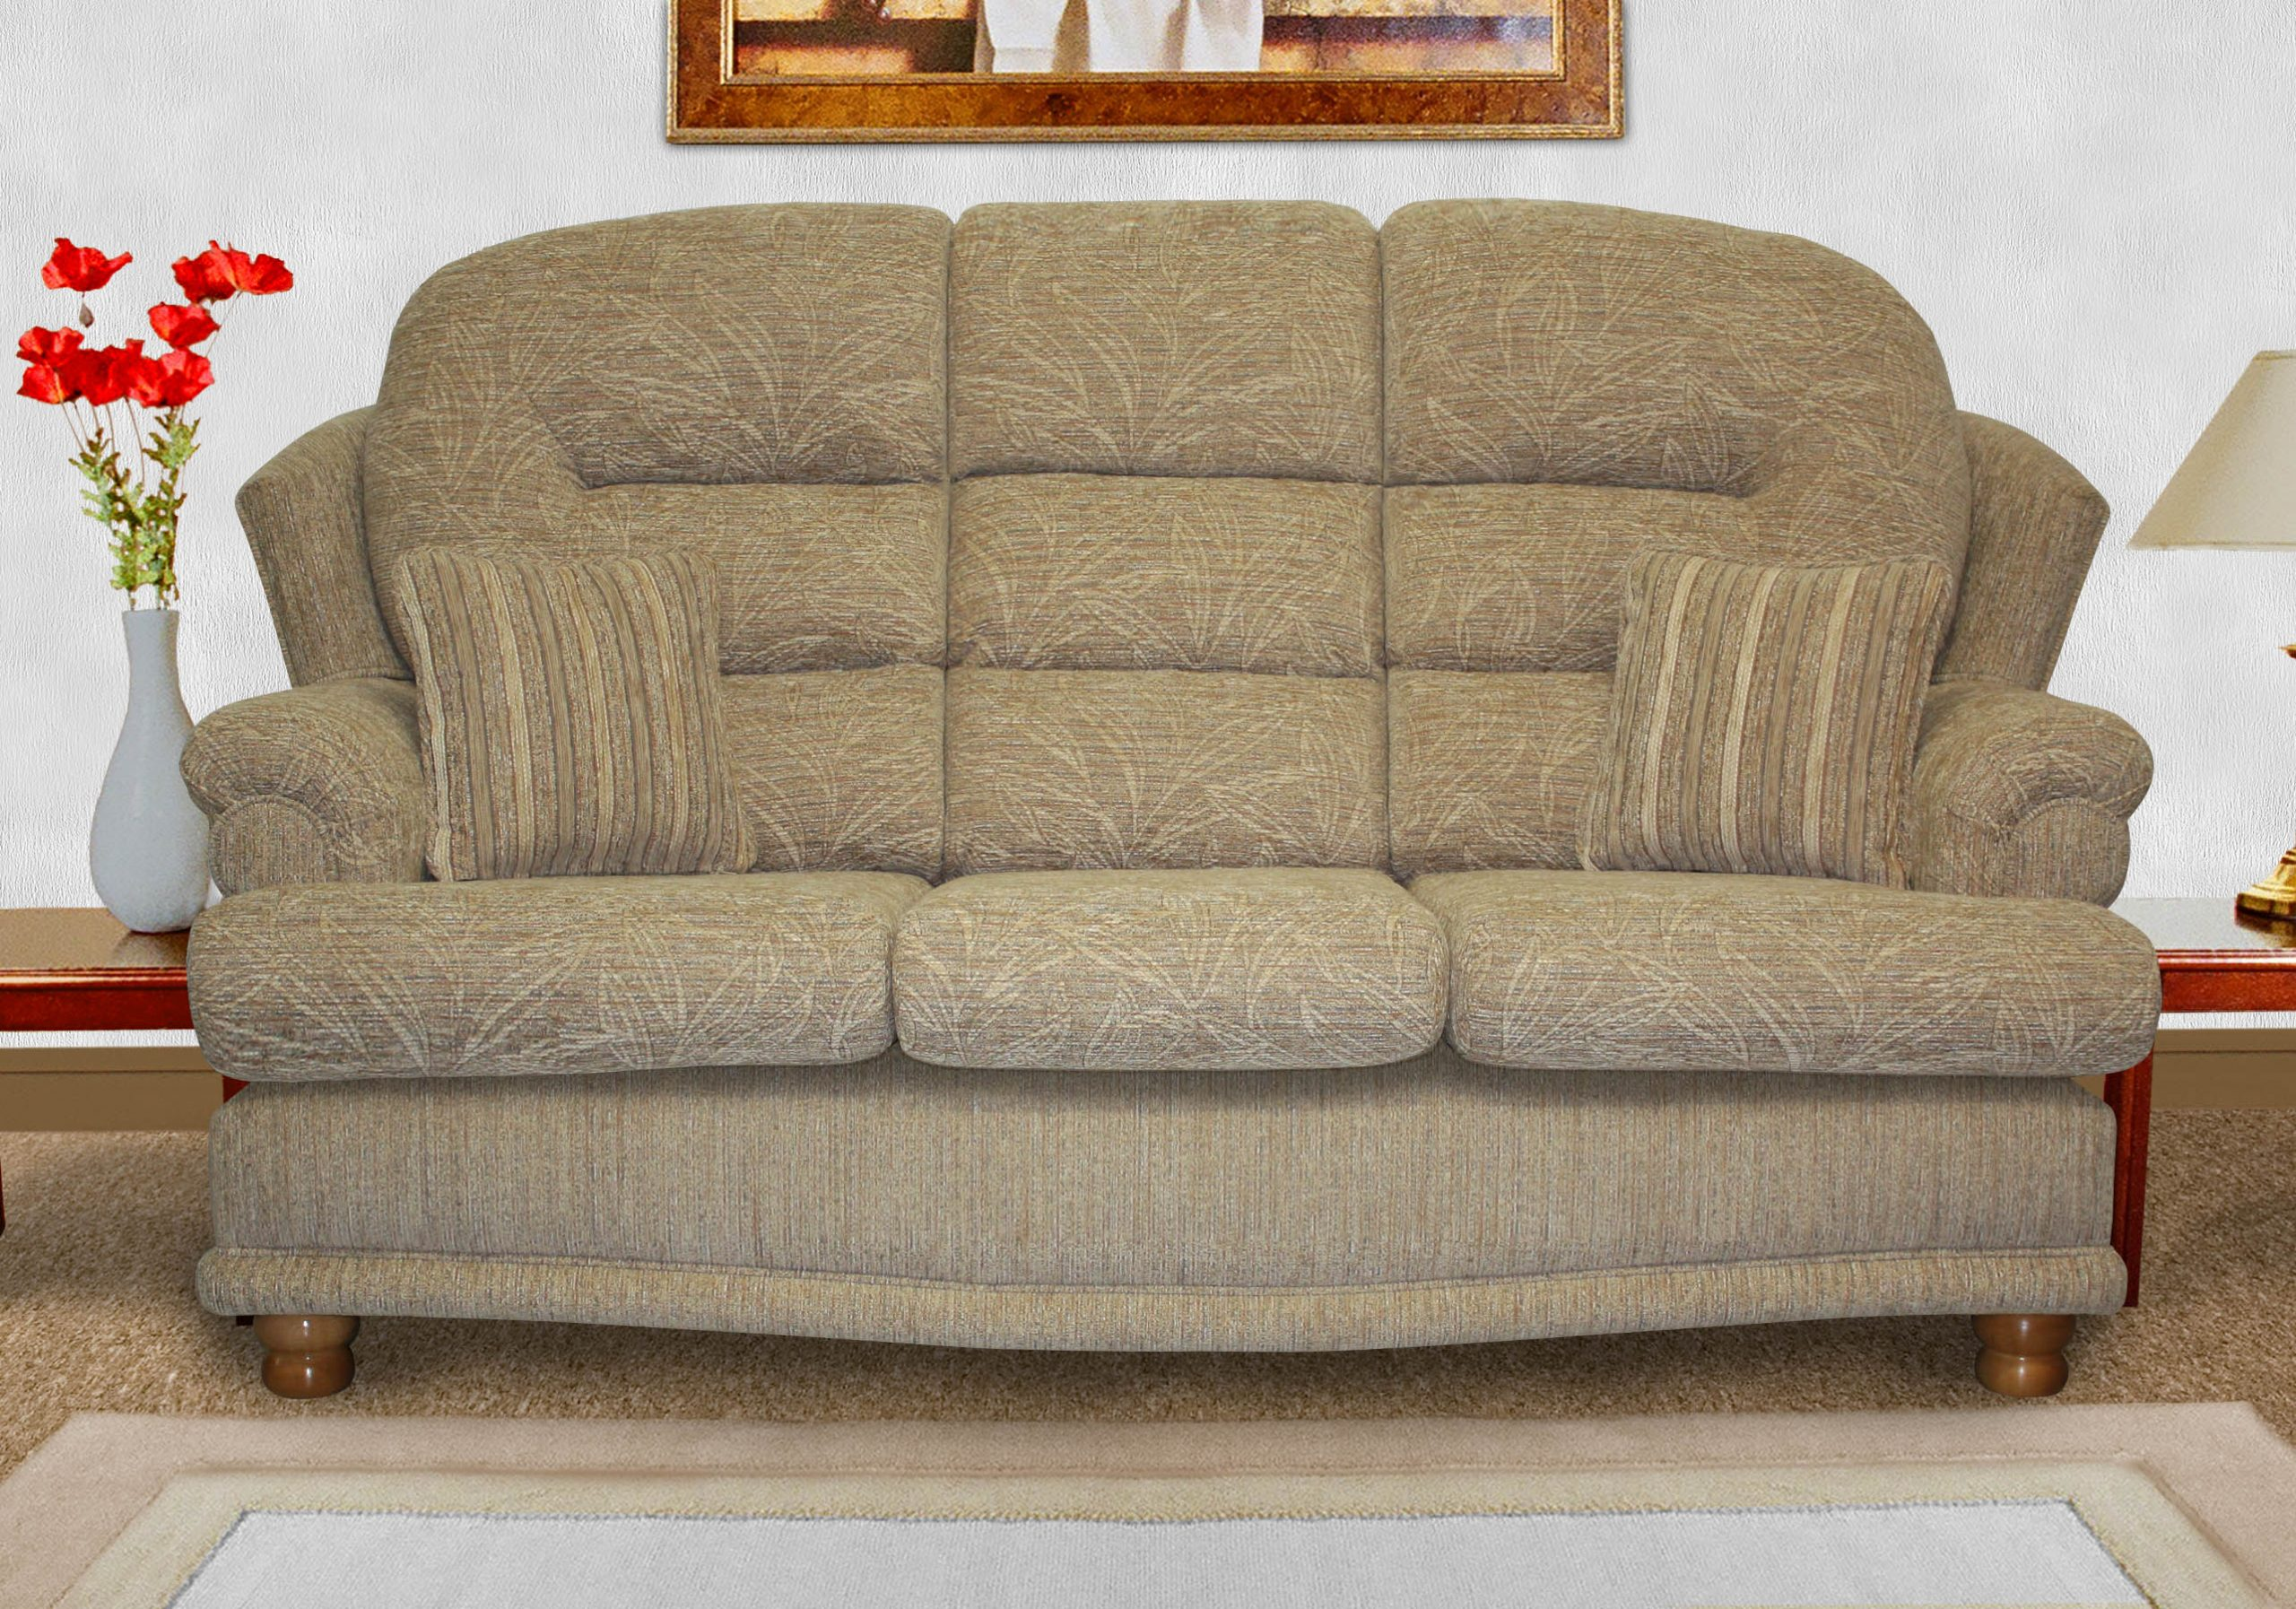 Ideal Upholstery Ledbury 3 Seater Sofa